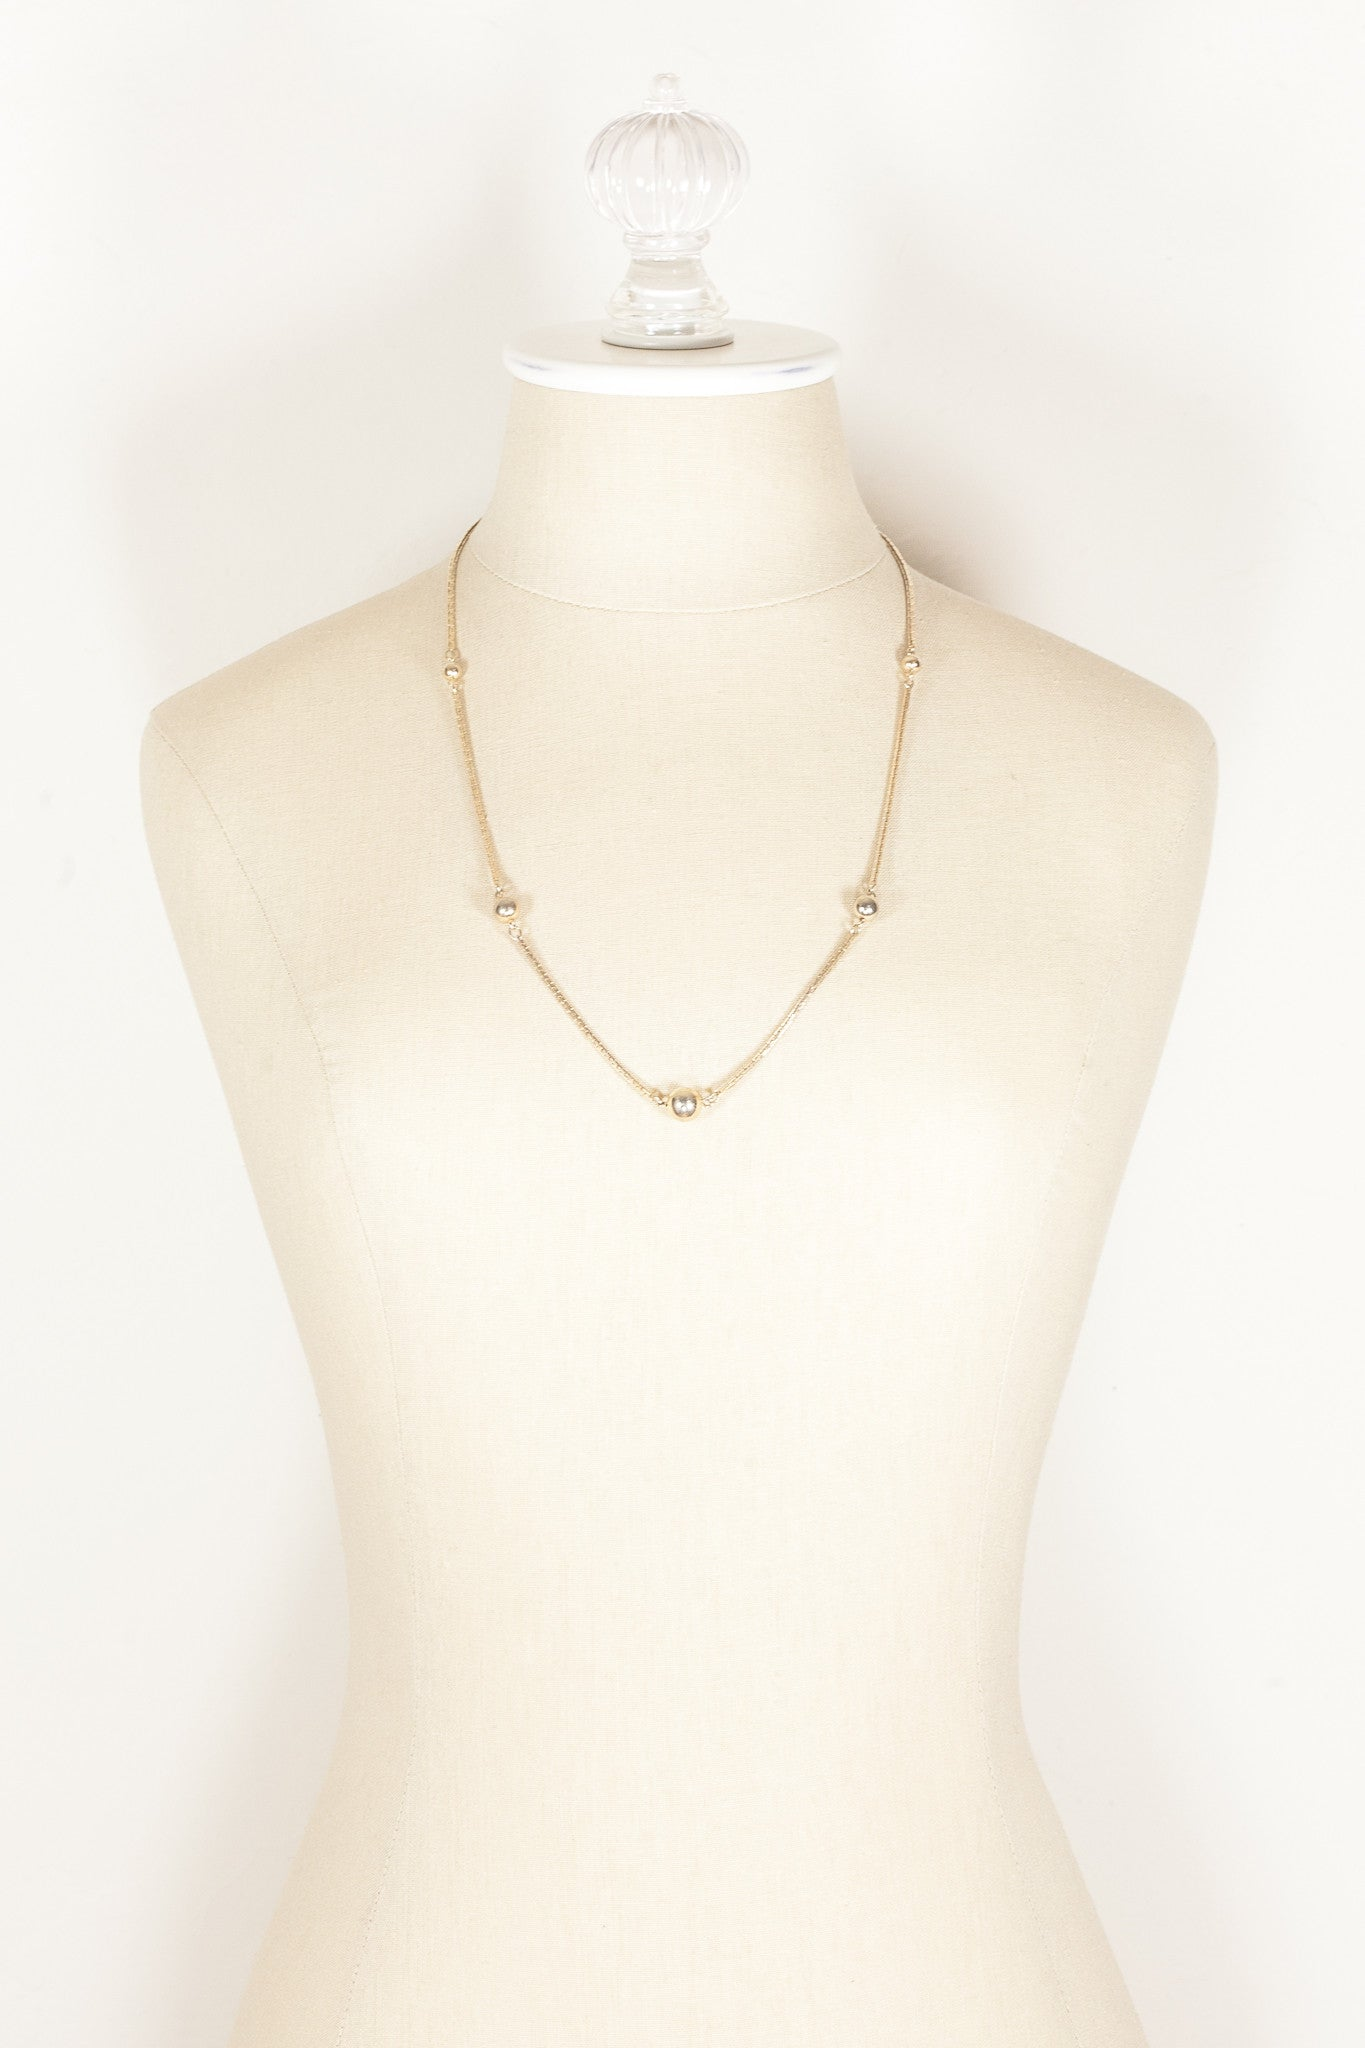 80's__Avon__Gold Bead & Chain Necklace